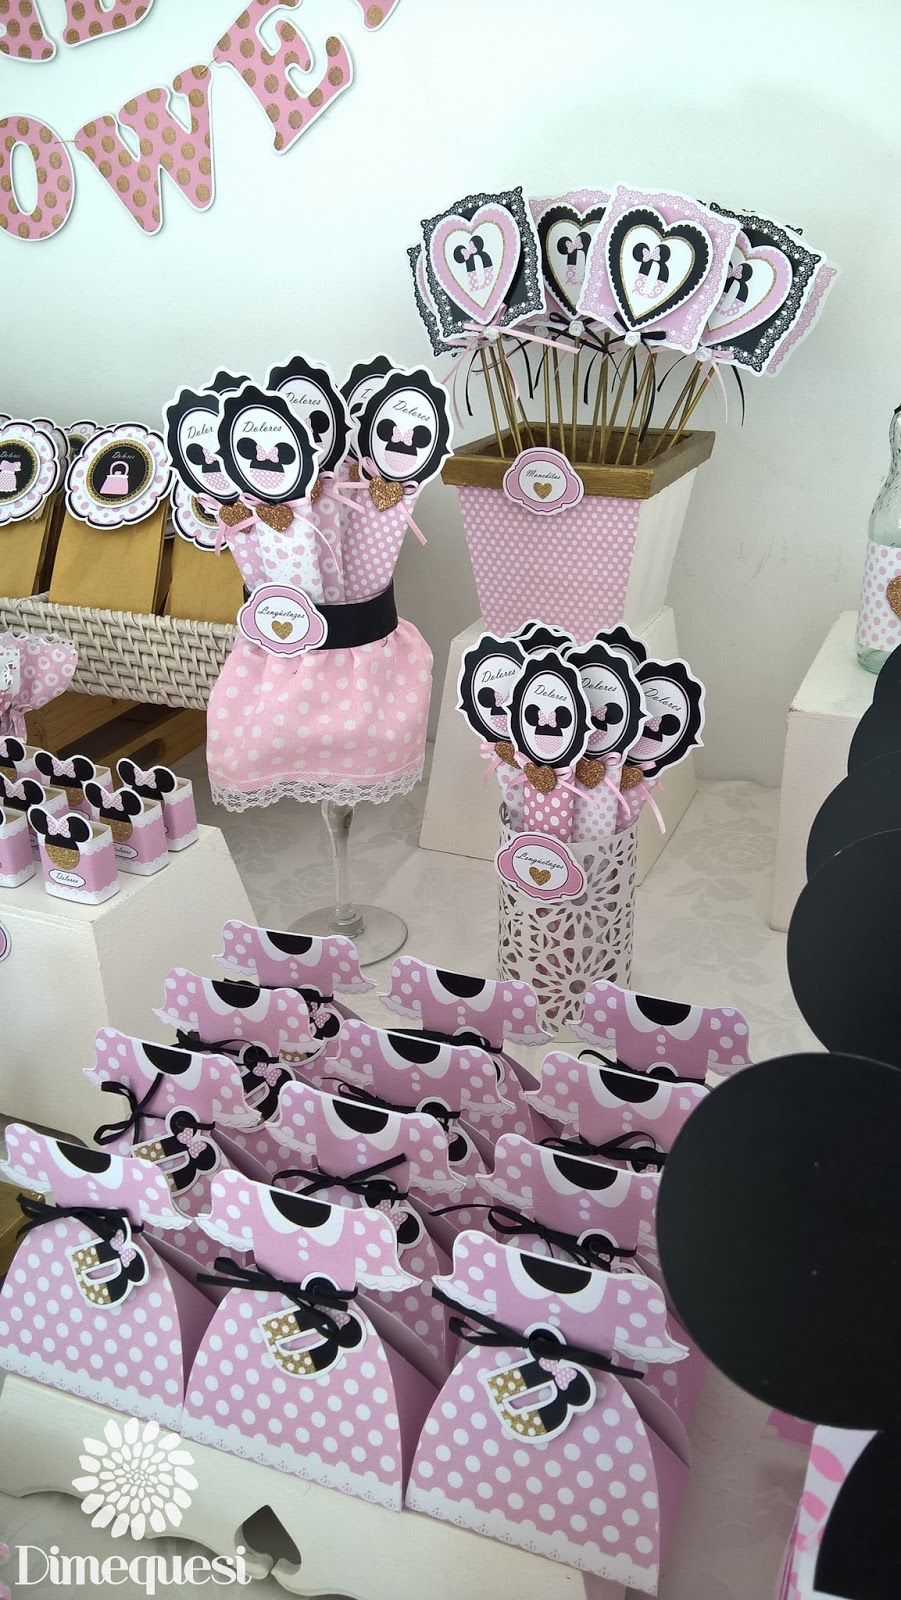 Dimequesi: Minnie Mouse Baby shower